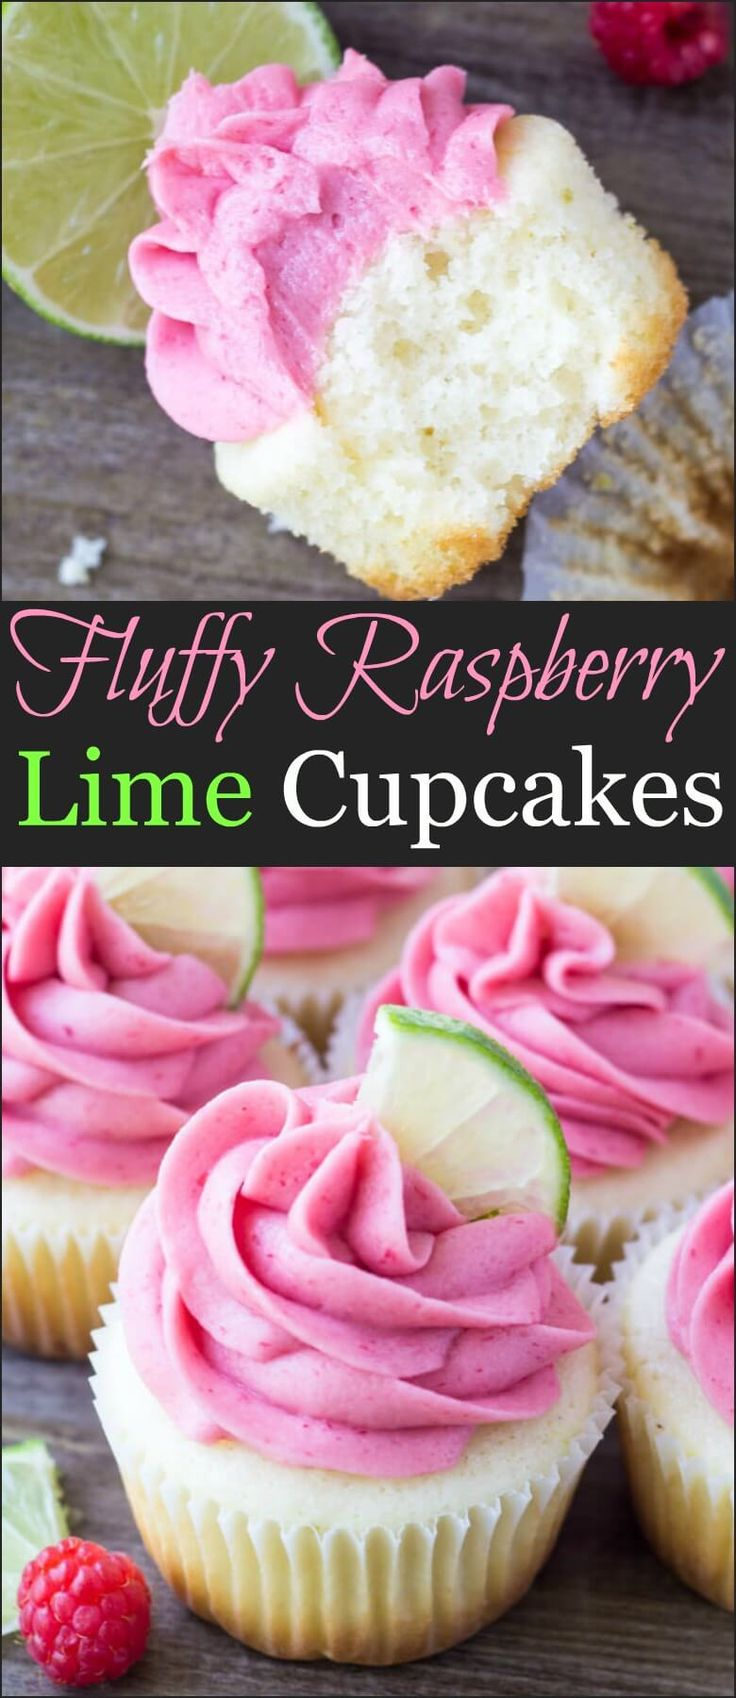 How to make fluffy raspberry lime cupcakes and have them turn out perfectly moist! ohsweetbasil.com